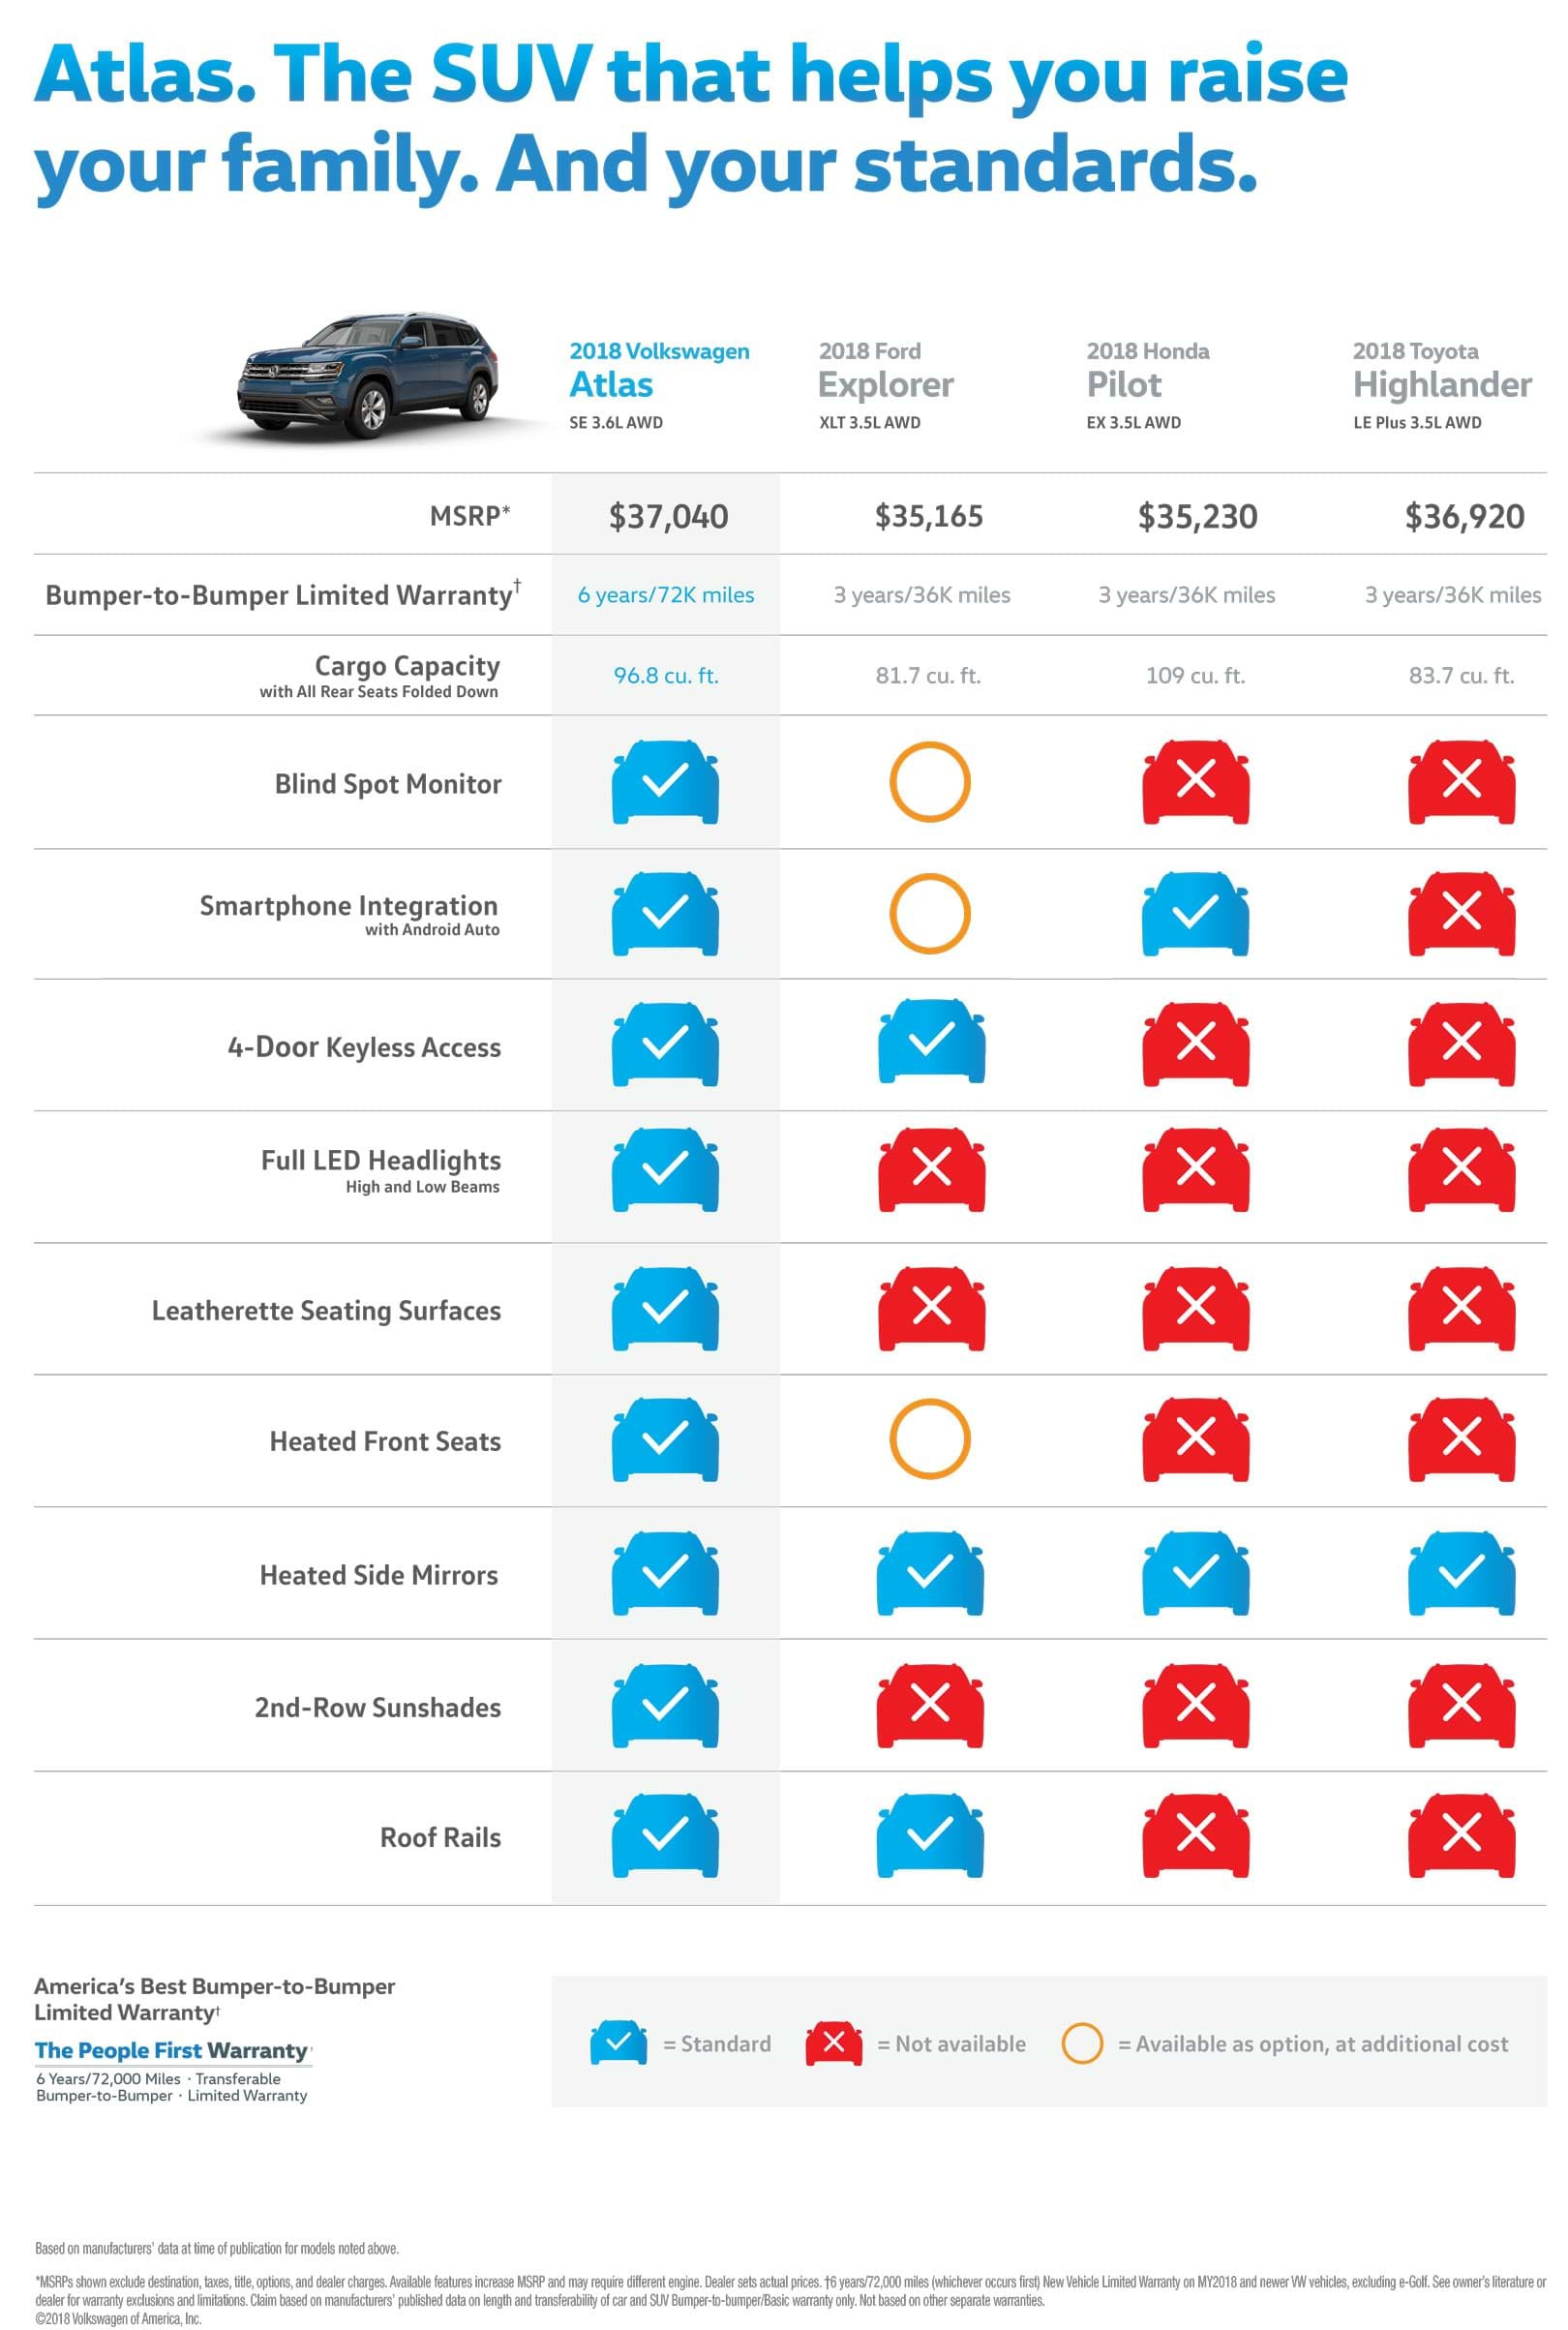 Compare All Wheel Drive SUVs